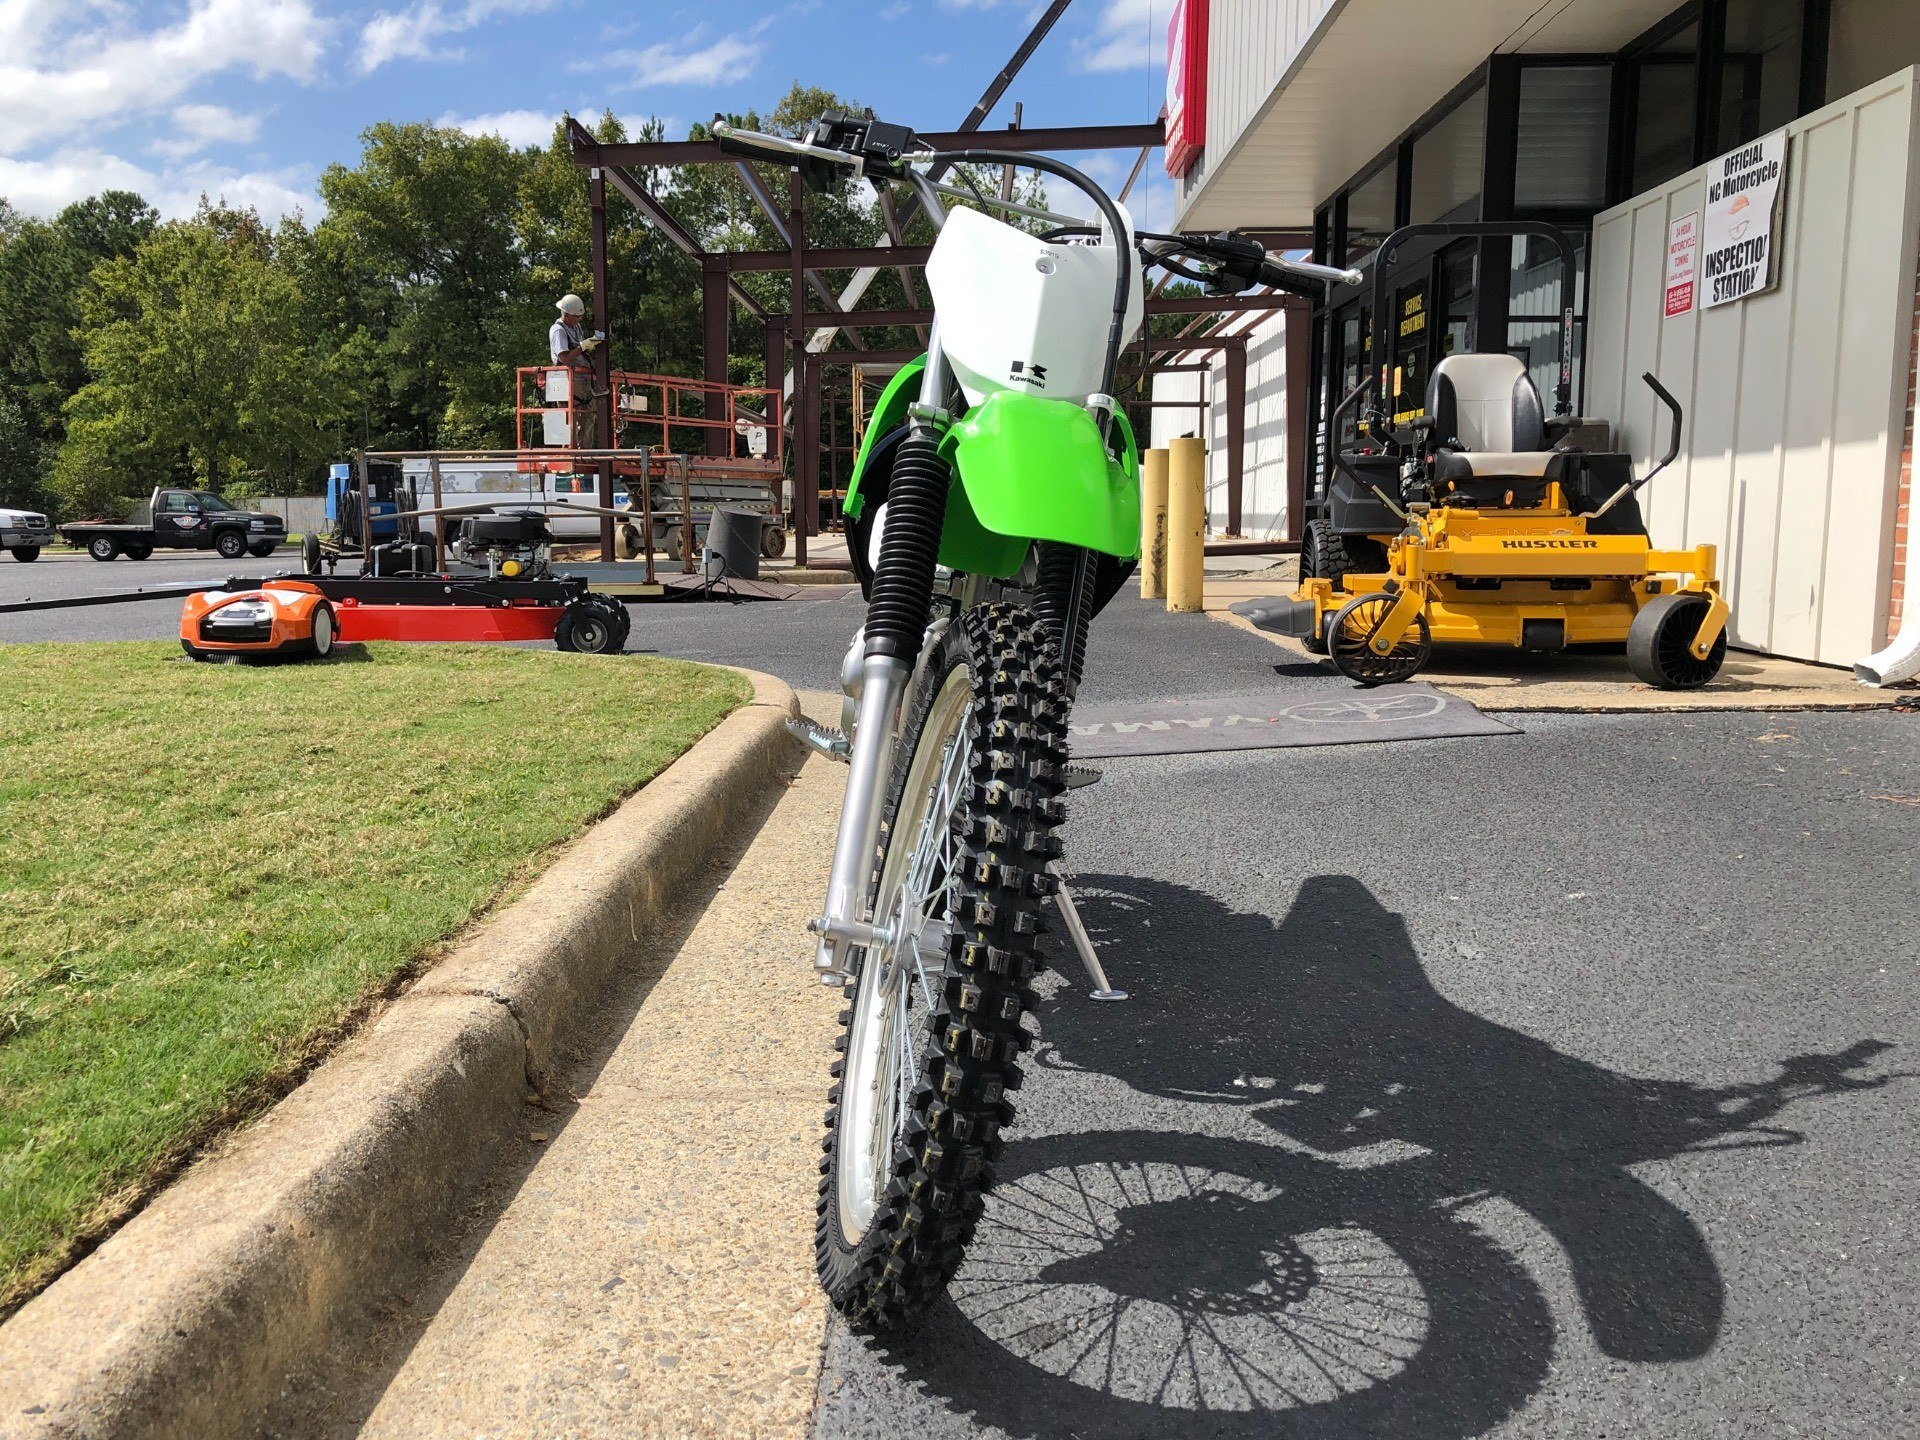 2020 Kawasaki KLX 140G in Greenville, North Carolina - Photo 4